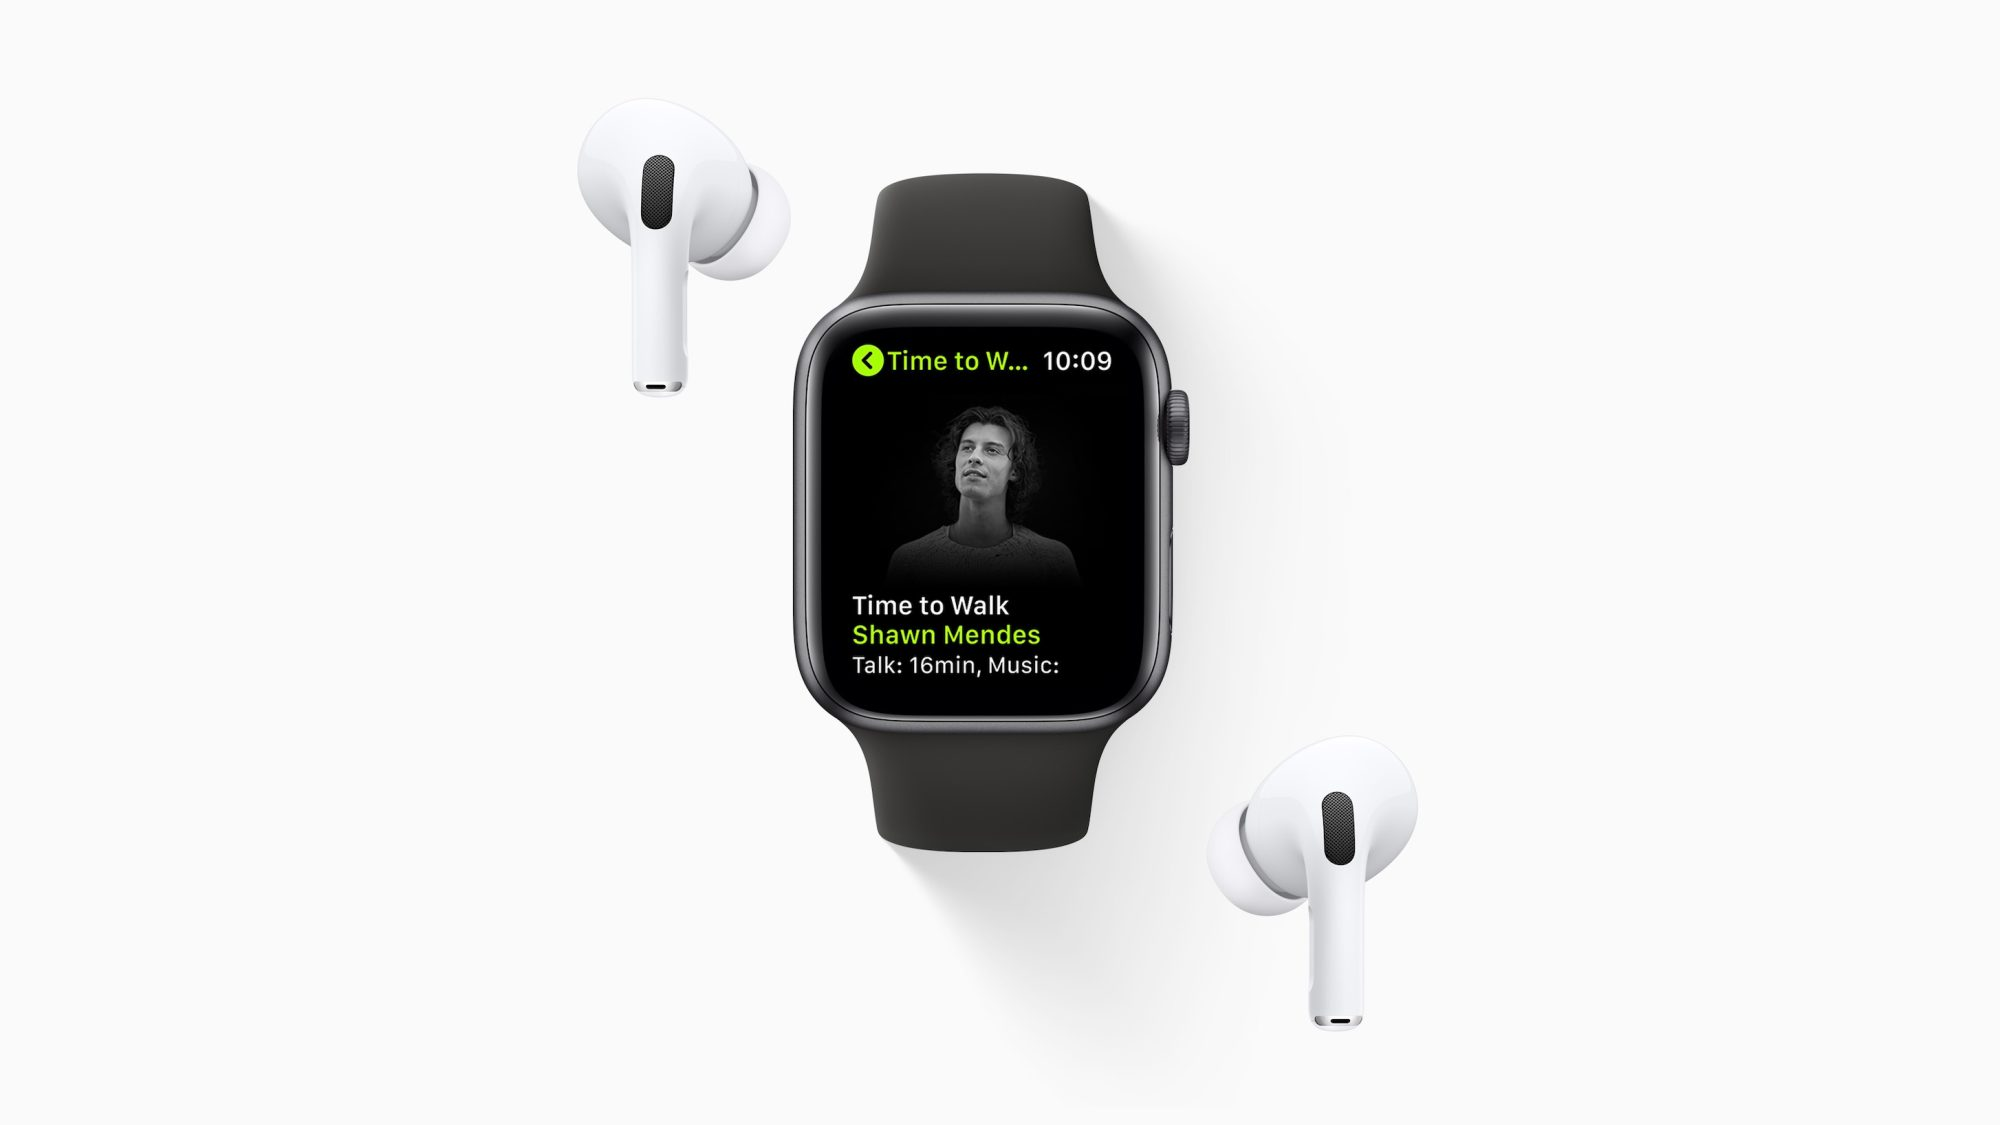 Apple представила функцию Time to Walk для Apple Watch и подписчиков Fitness